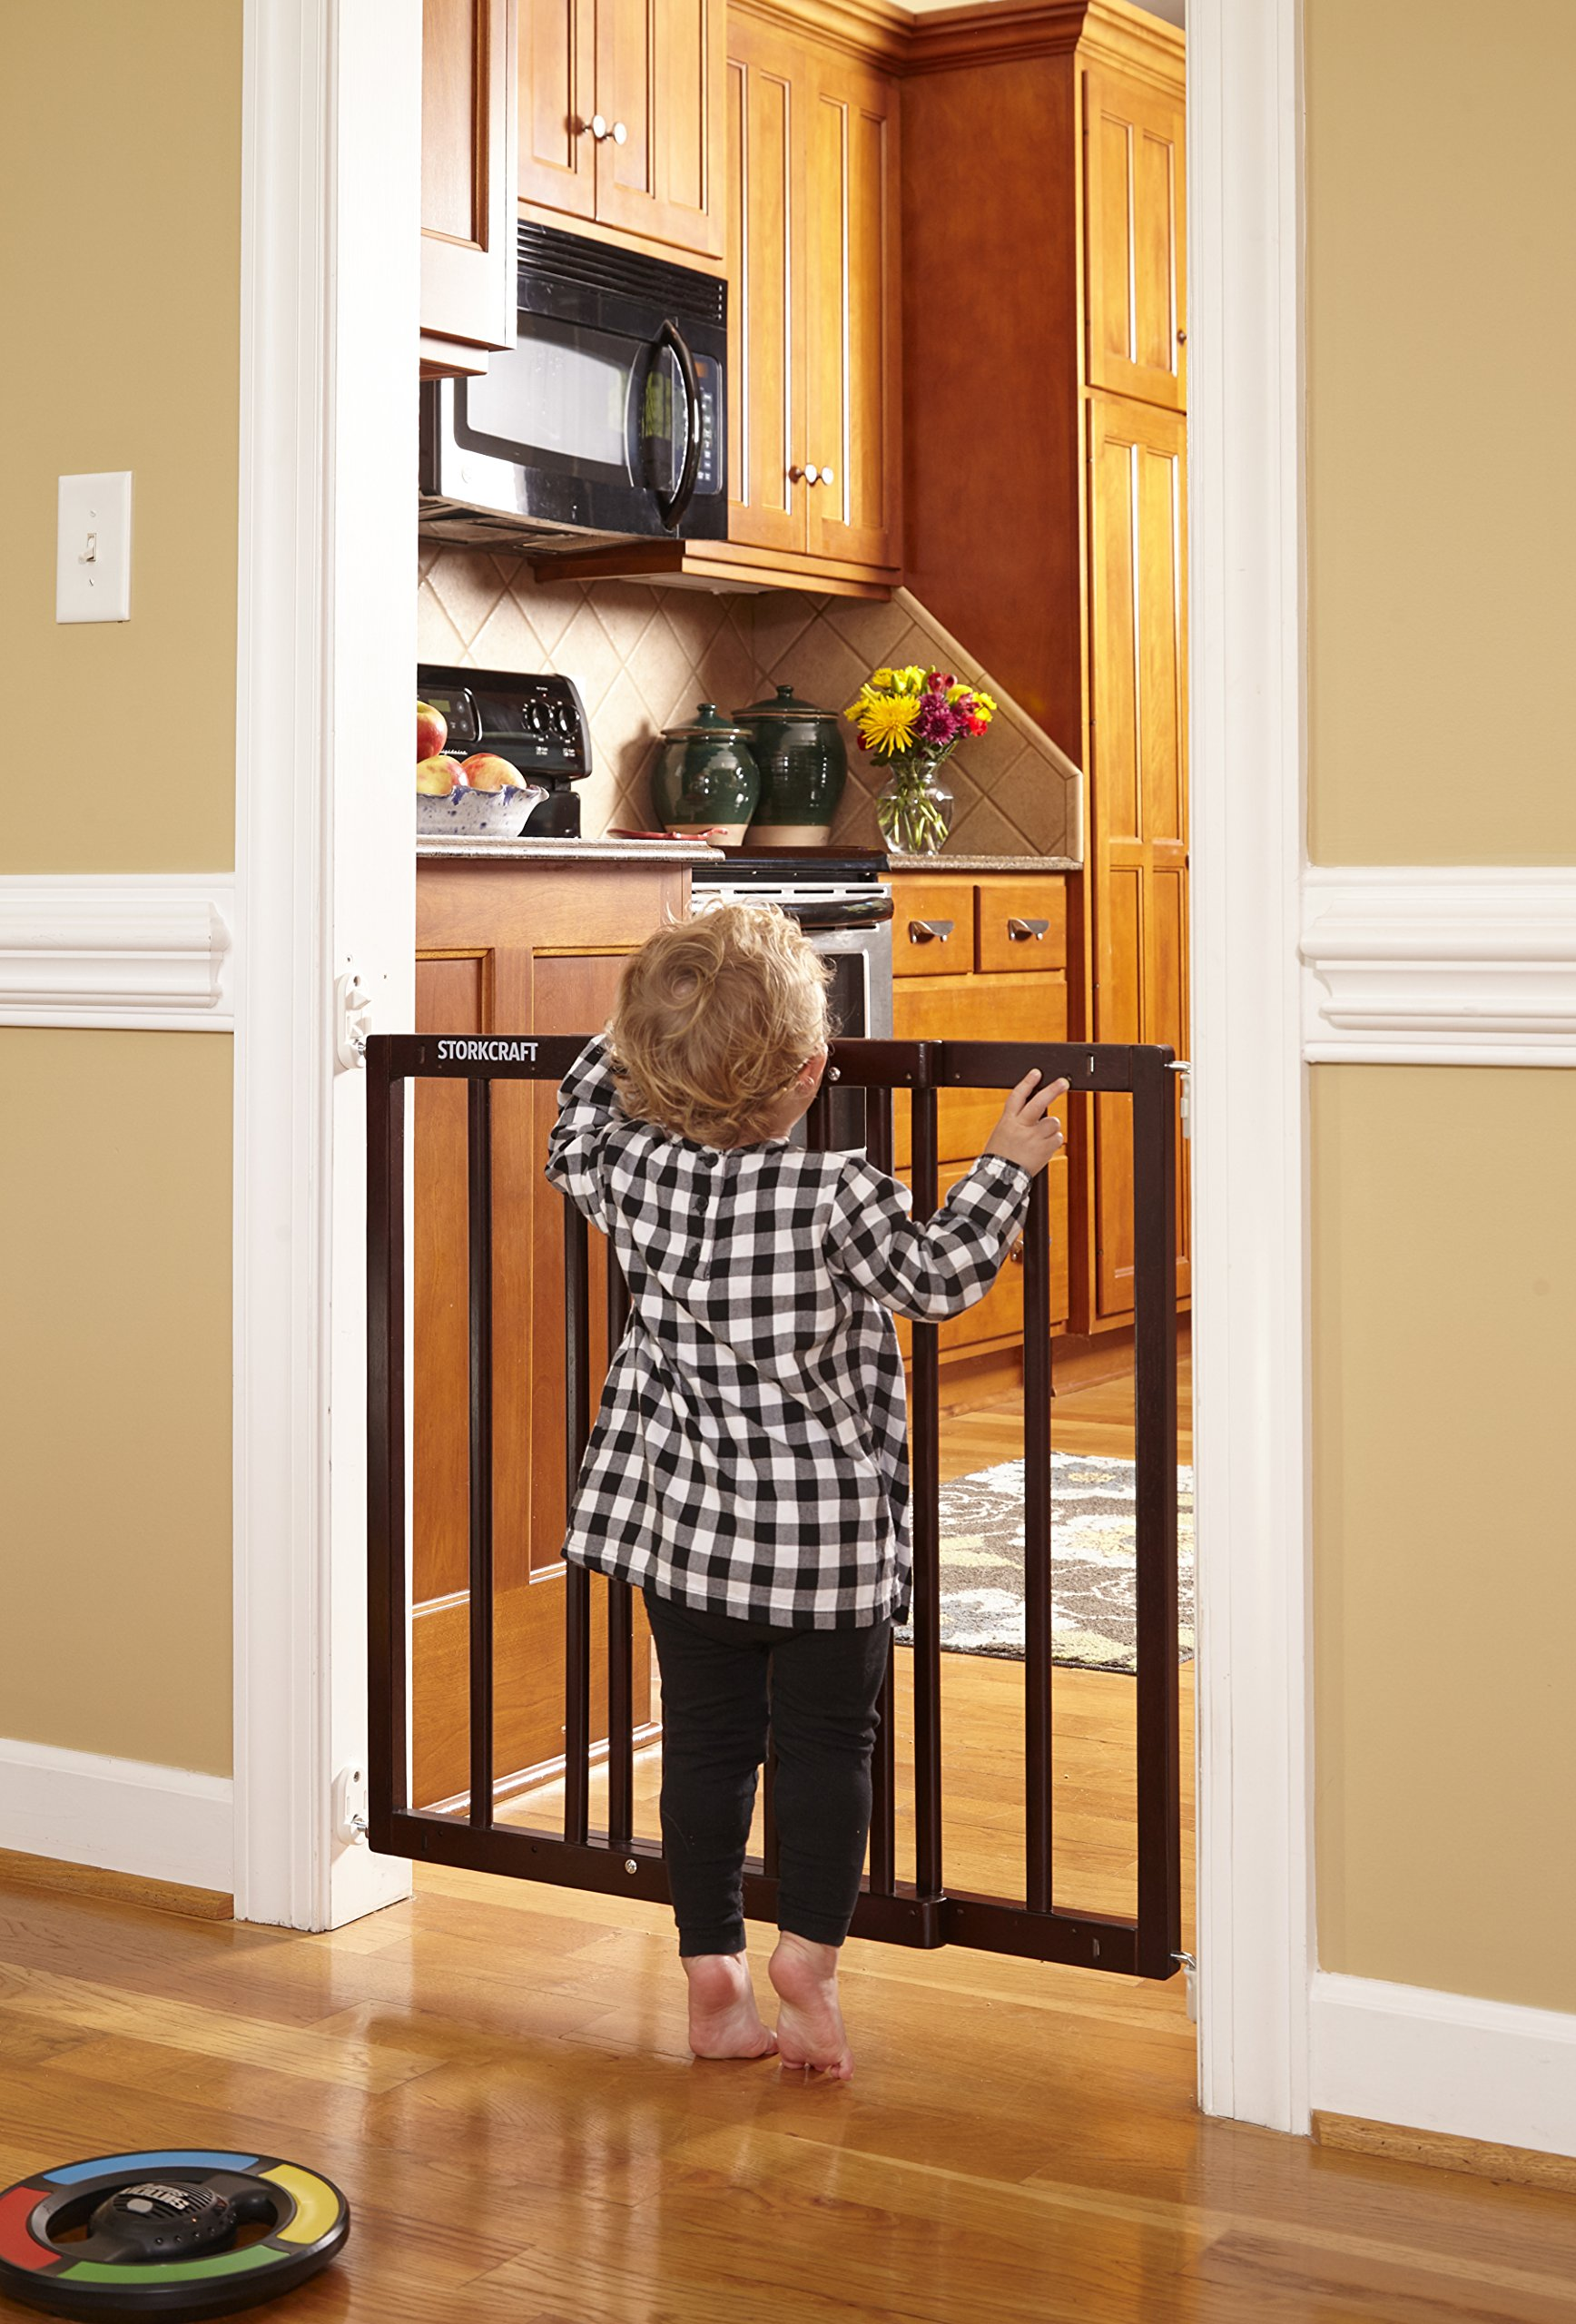 Storkcraft Easy Walk-Thru Wooden Safety Gate, Espresso Adjustable Baby Safety Gate For Doorways and Stairs, Great for Children and Pets by Stork Craft (Image #6)